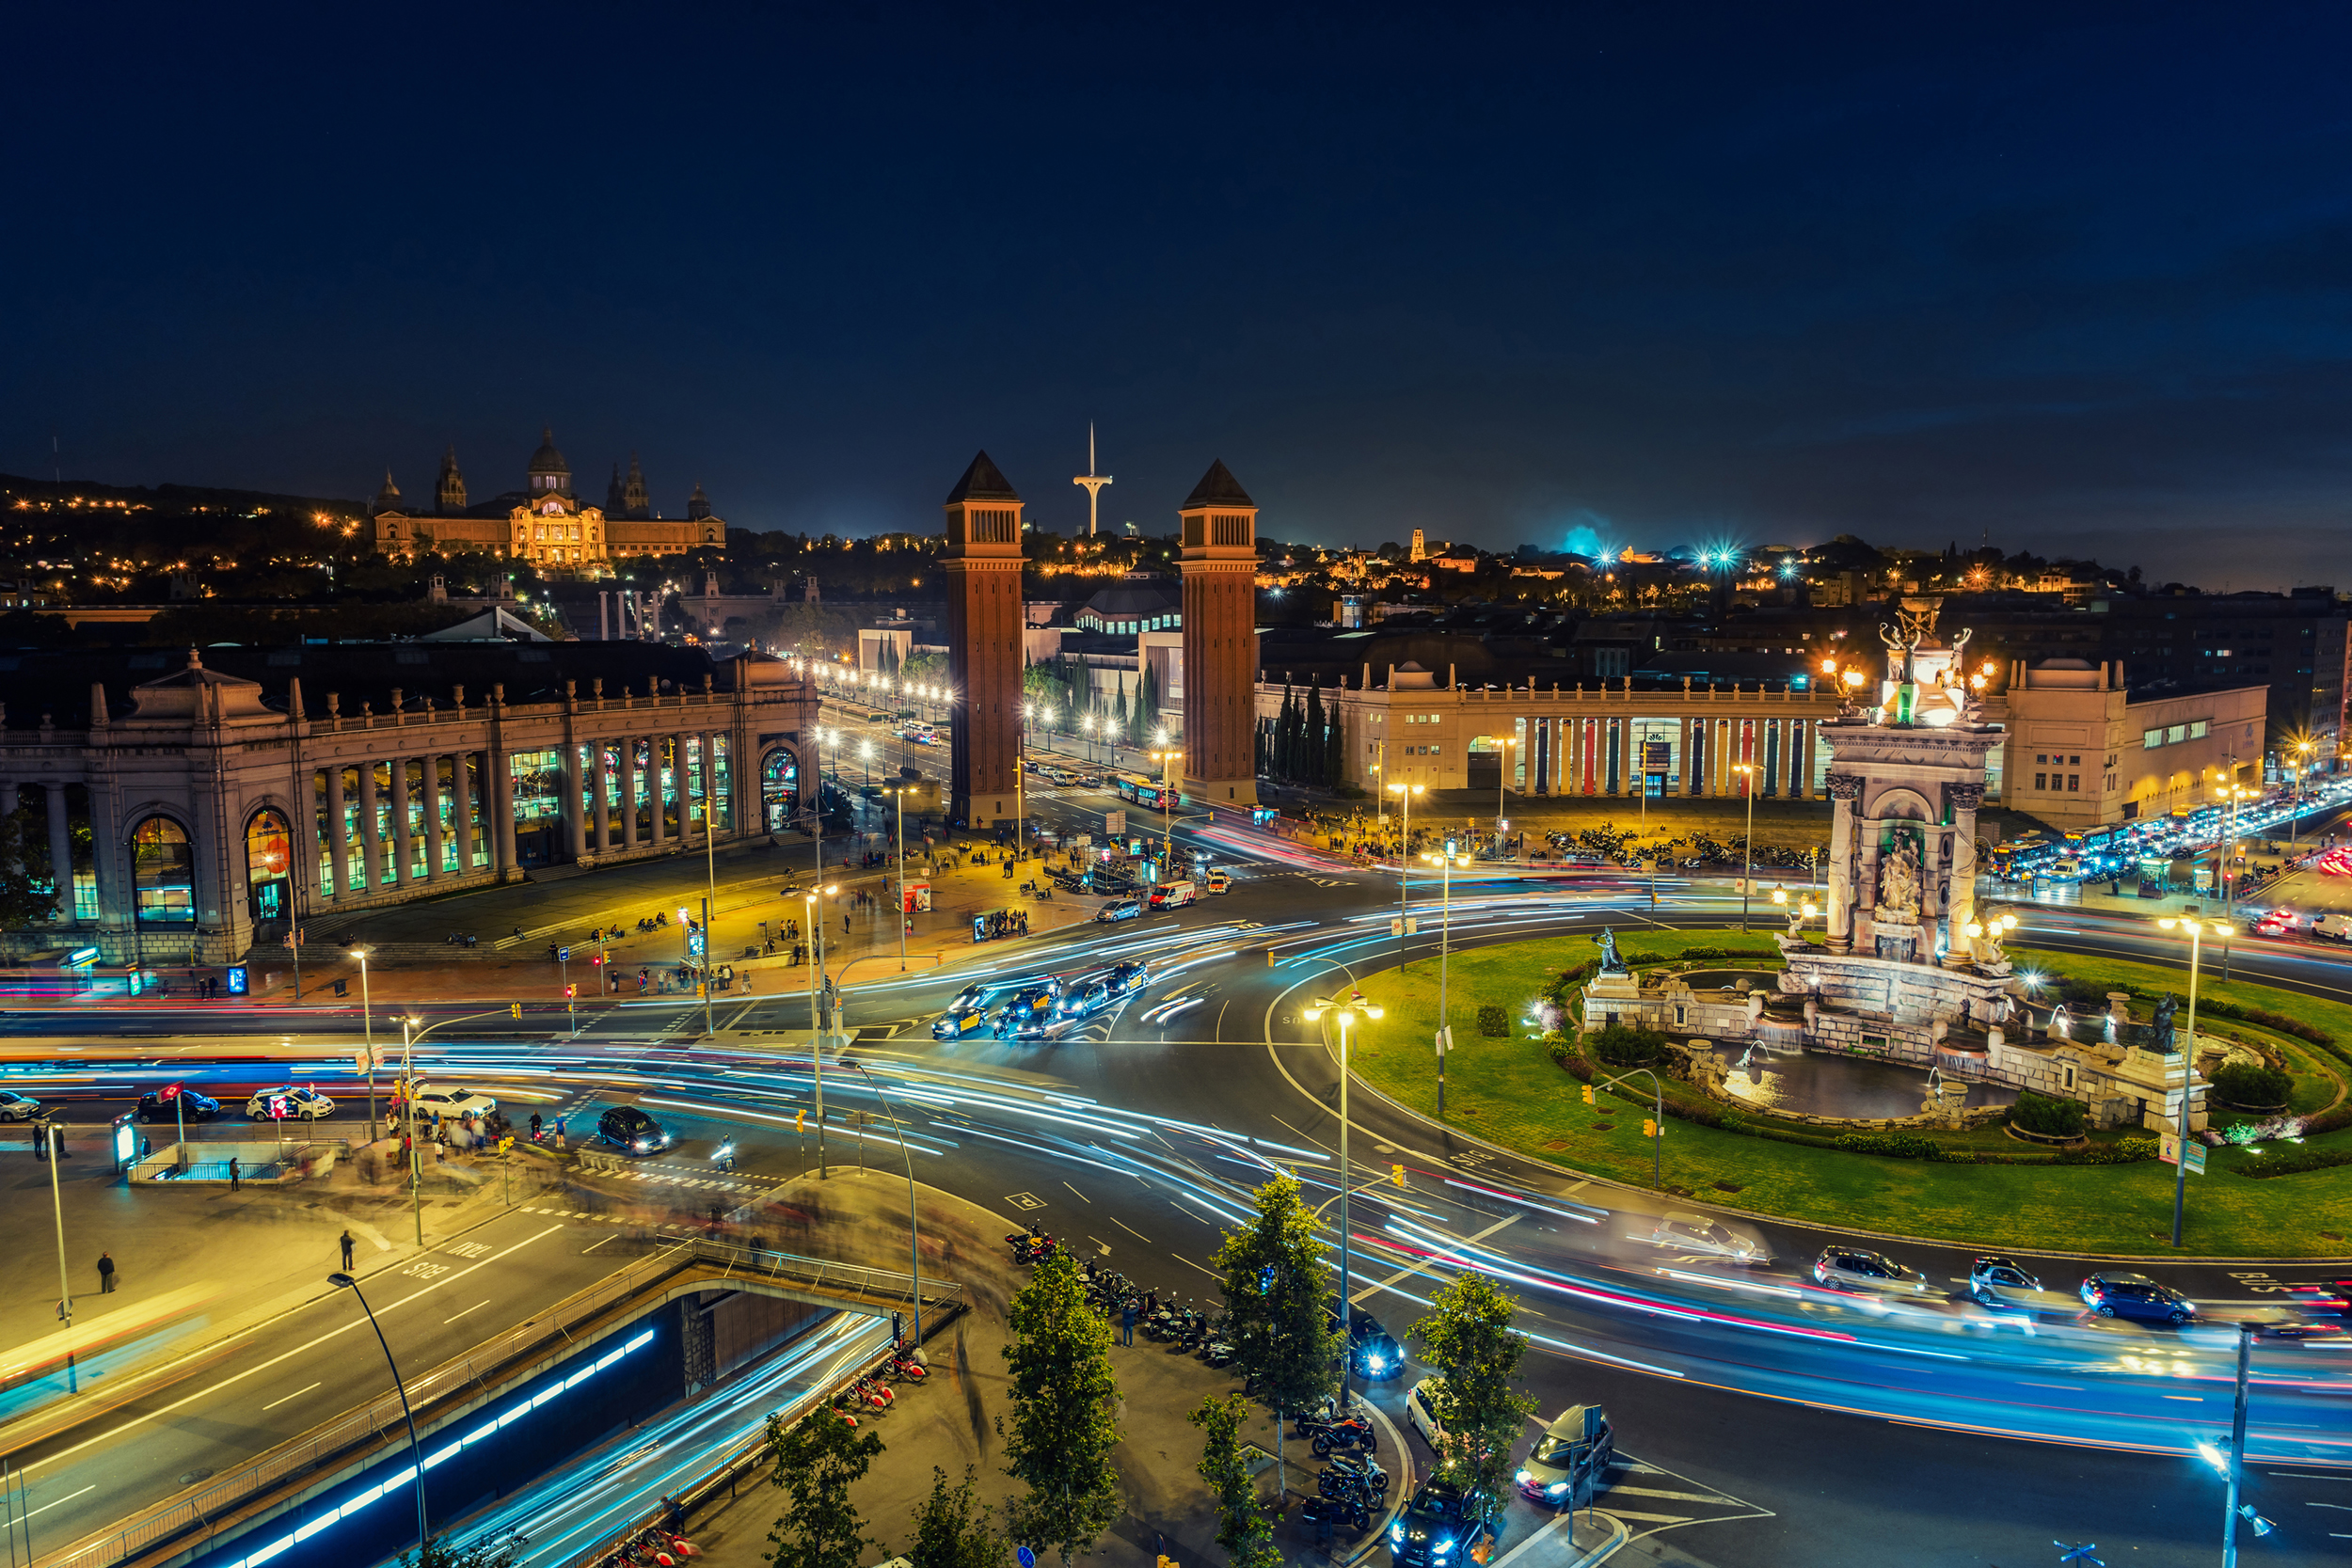 Spanish Square aerial view in Barcelona, Spain at night. This is the famous place with traffic light trails, fountain and Venetian towers, and National museum at the background. Blue sky